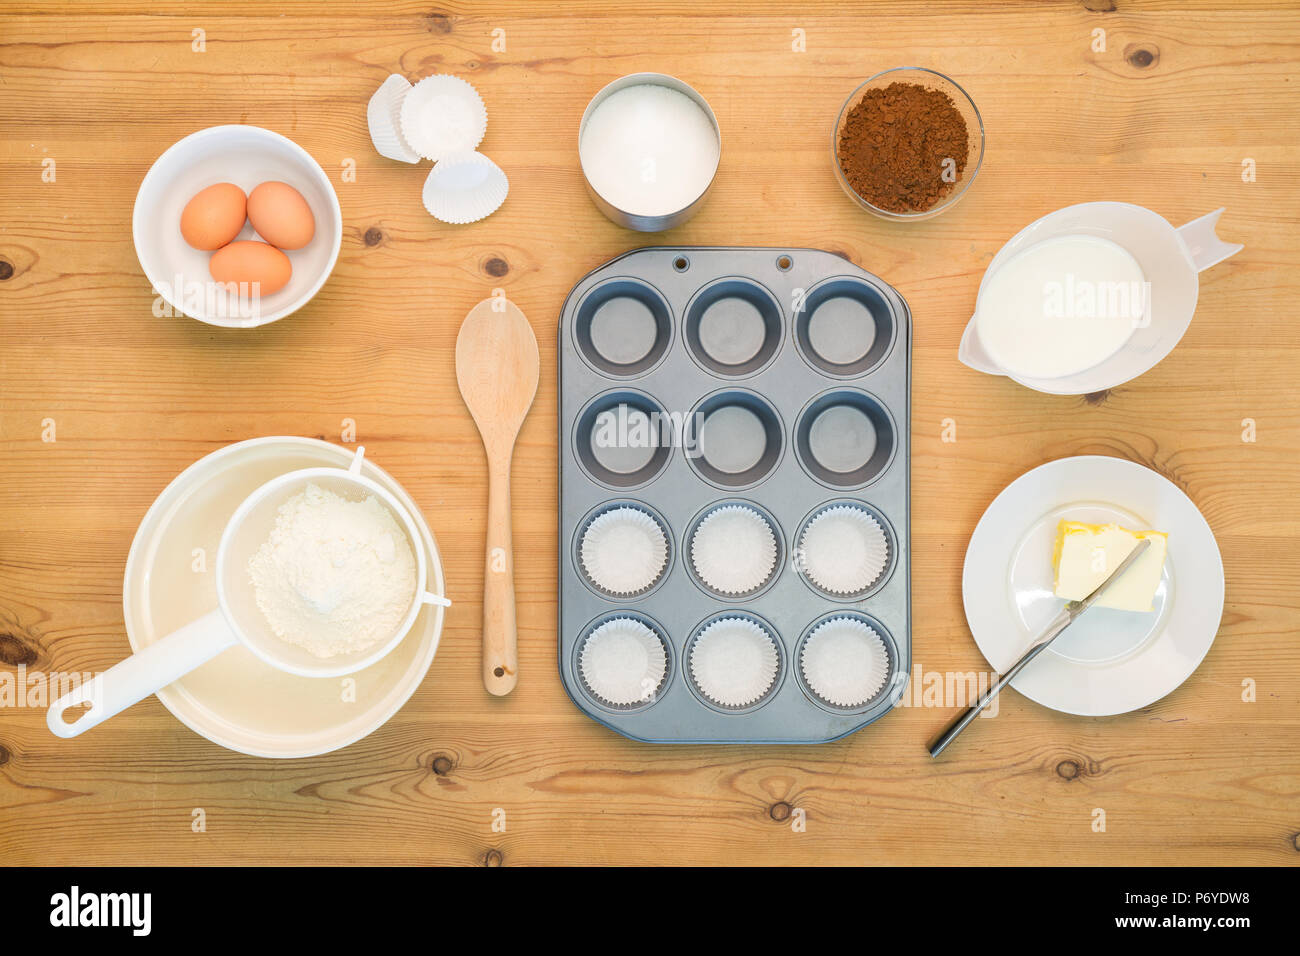 Overhead flat lay arrangement of Cup Cake making ingredients and equipment on a kitchen table. - Stock Image